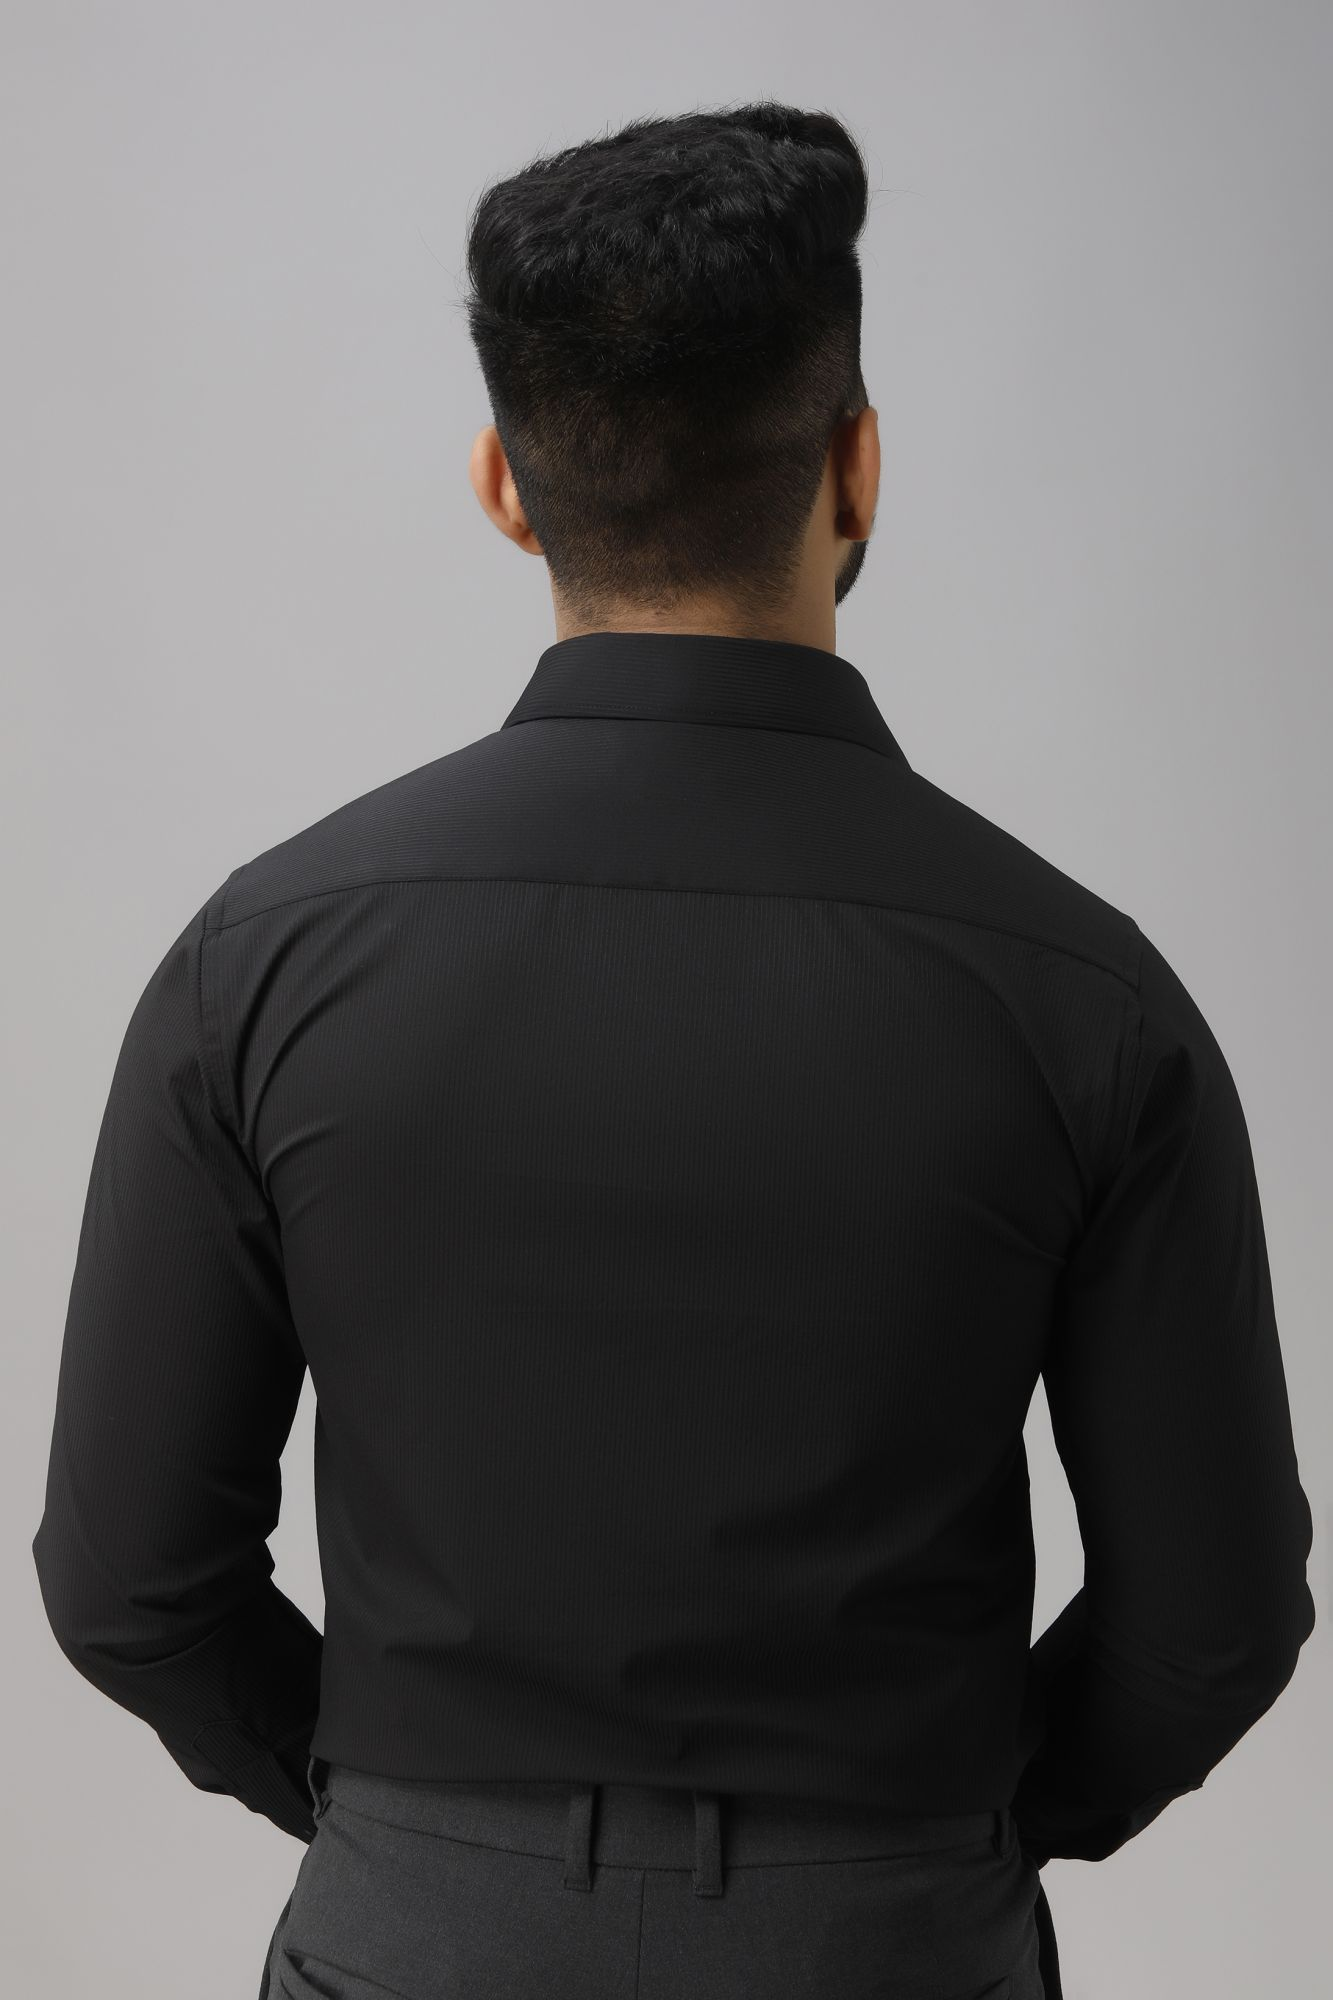 Textured Slim Fit Shirt in Black.